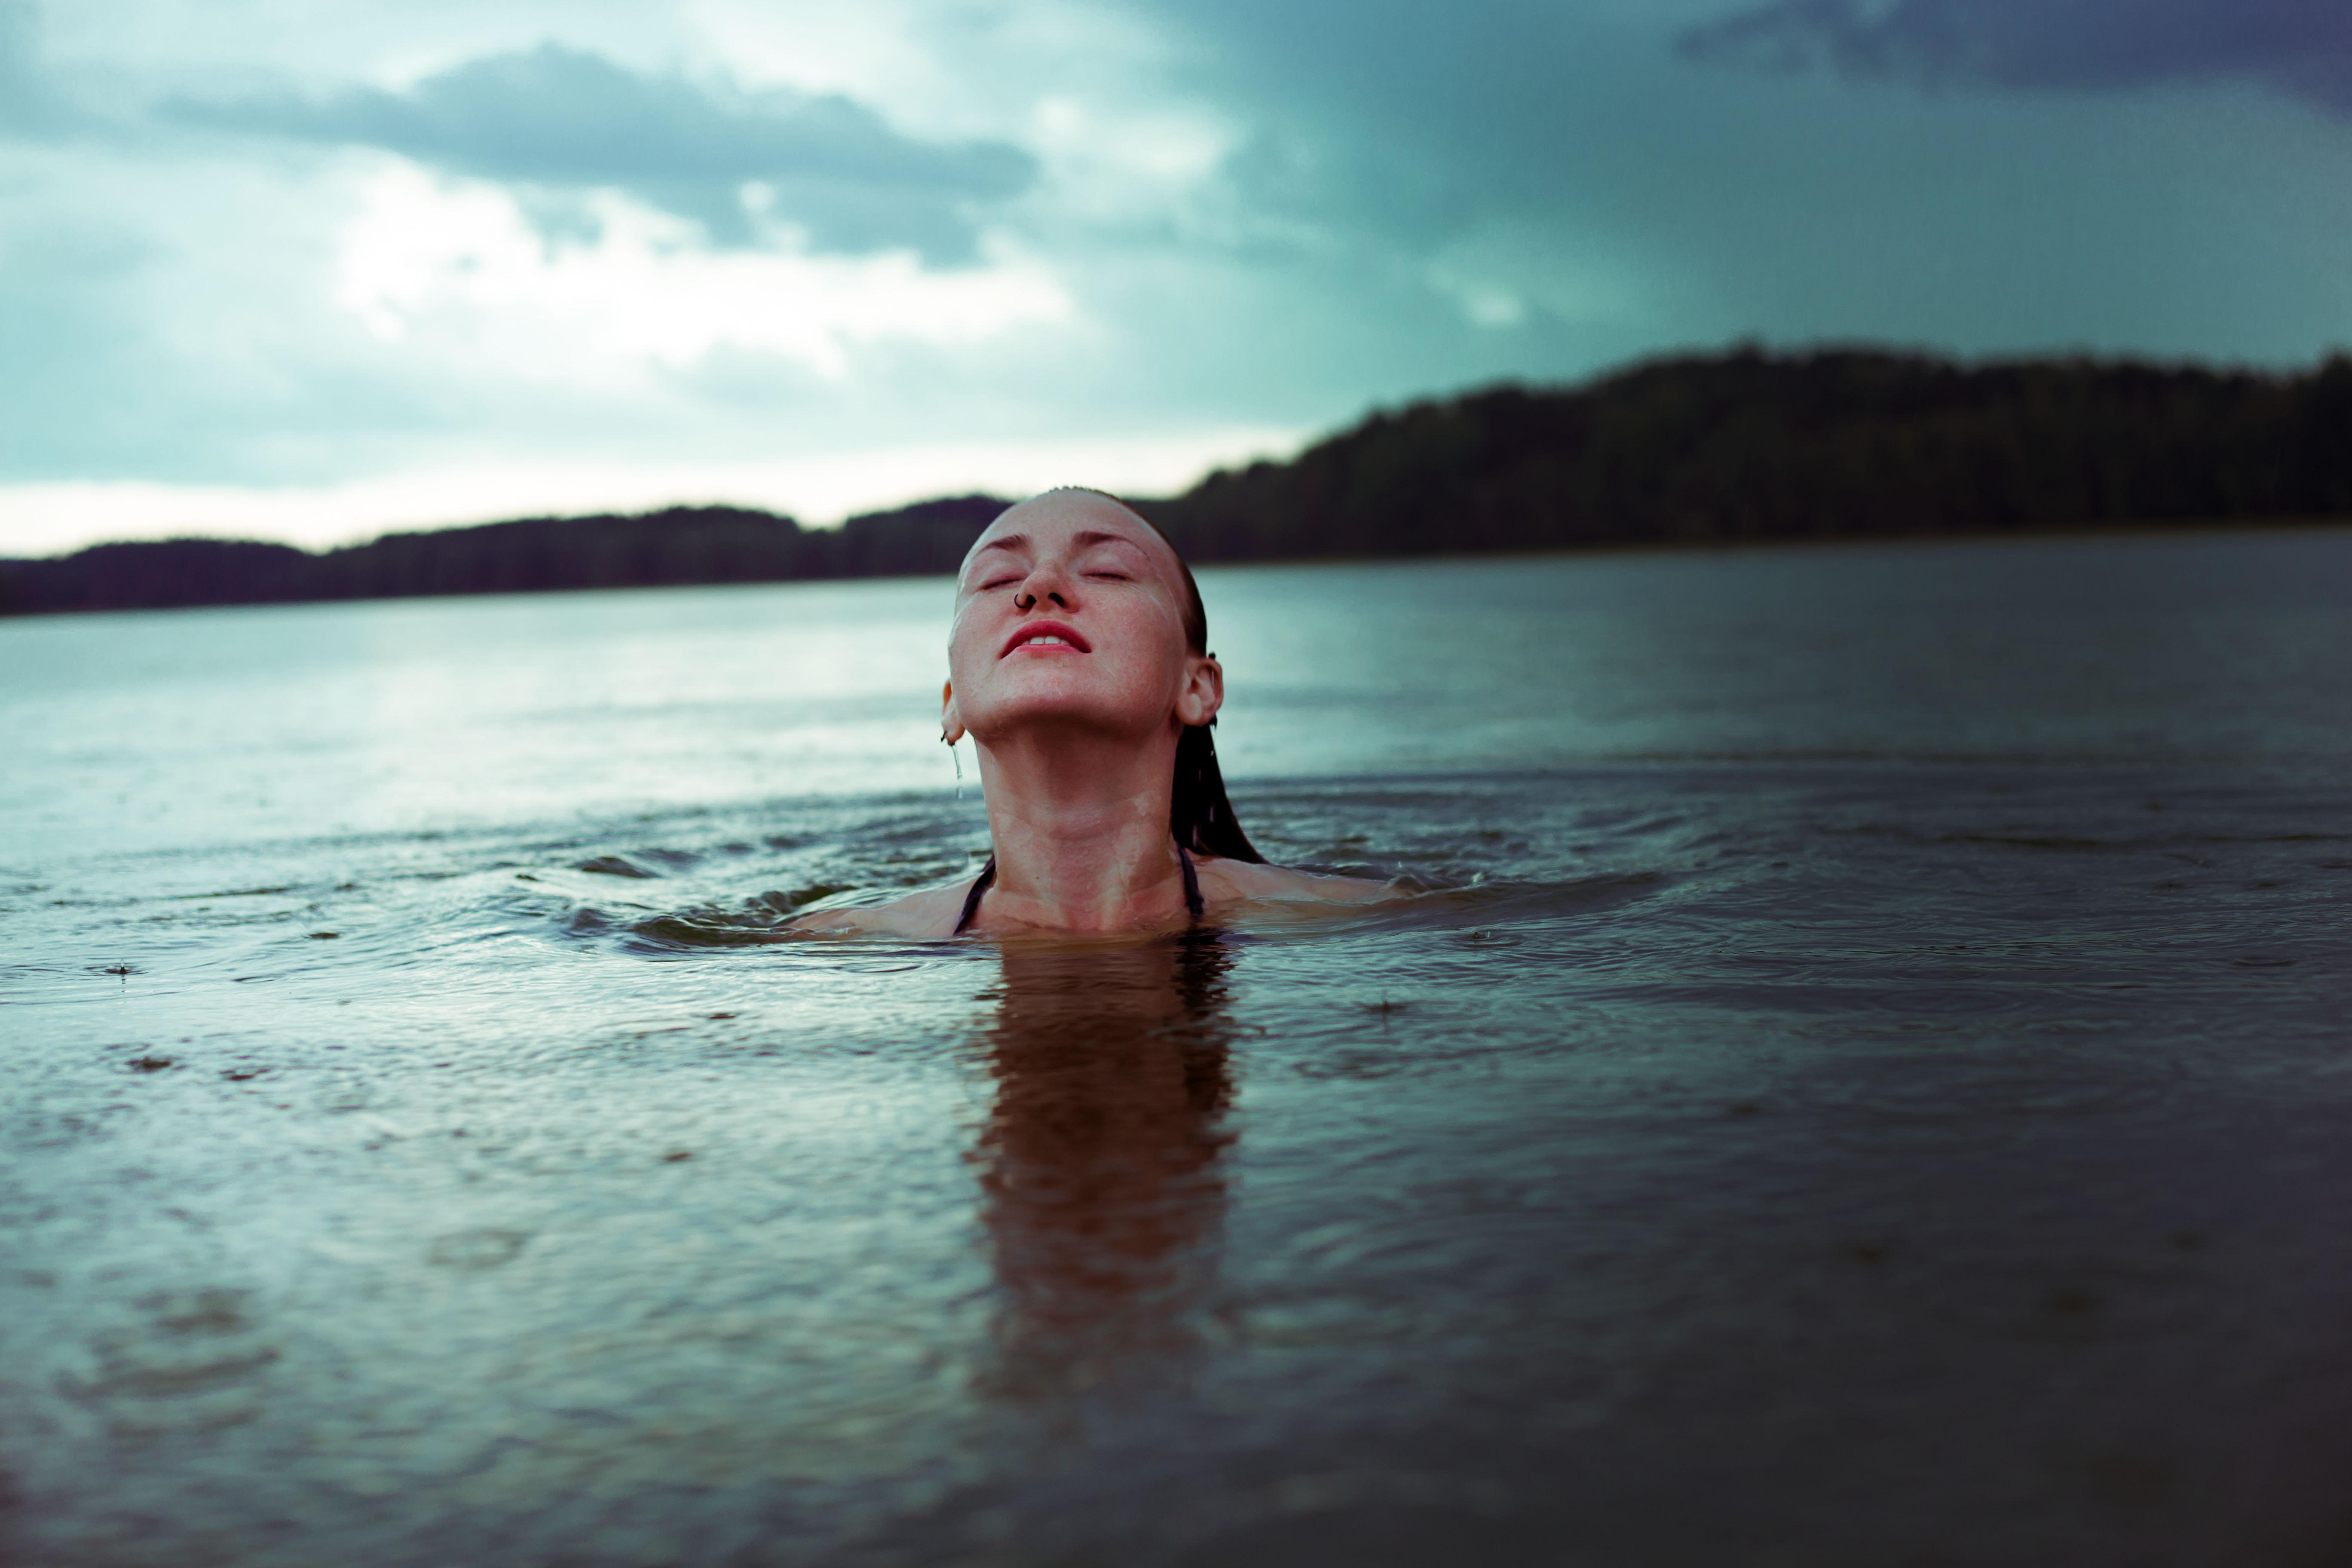 woman on body of water under cloudy sky during daytime